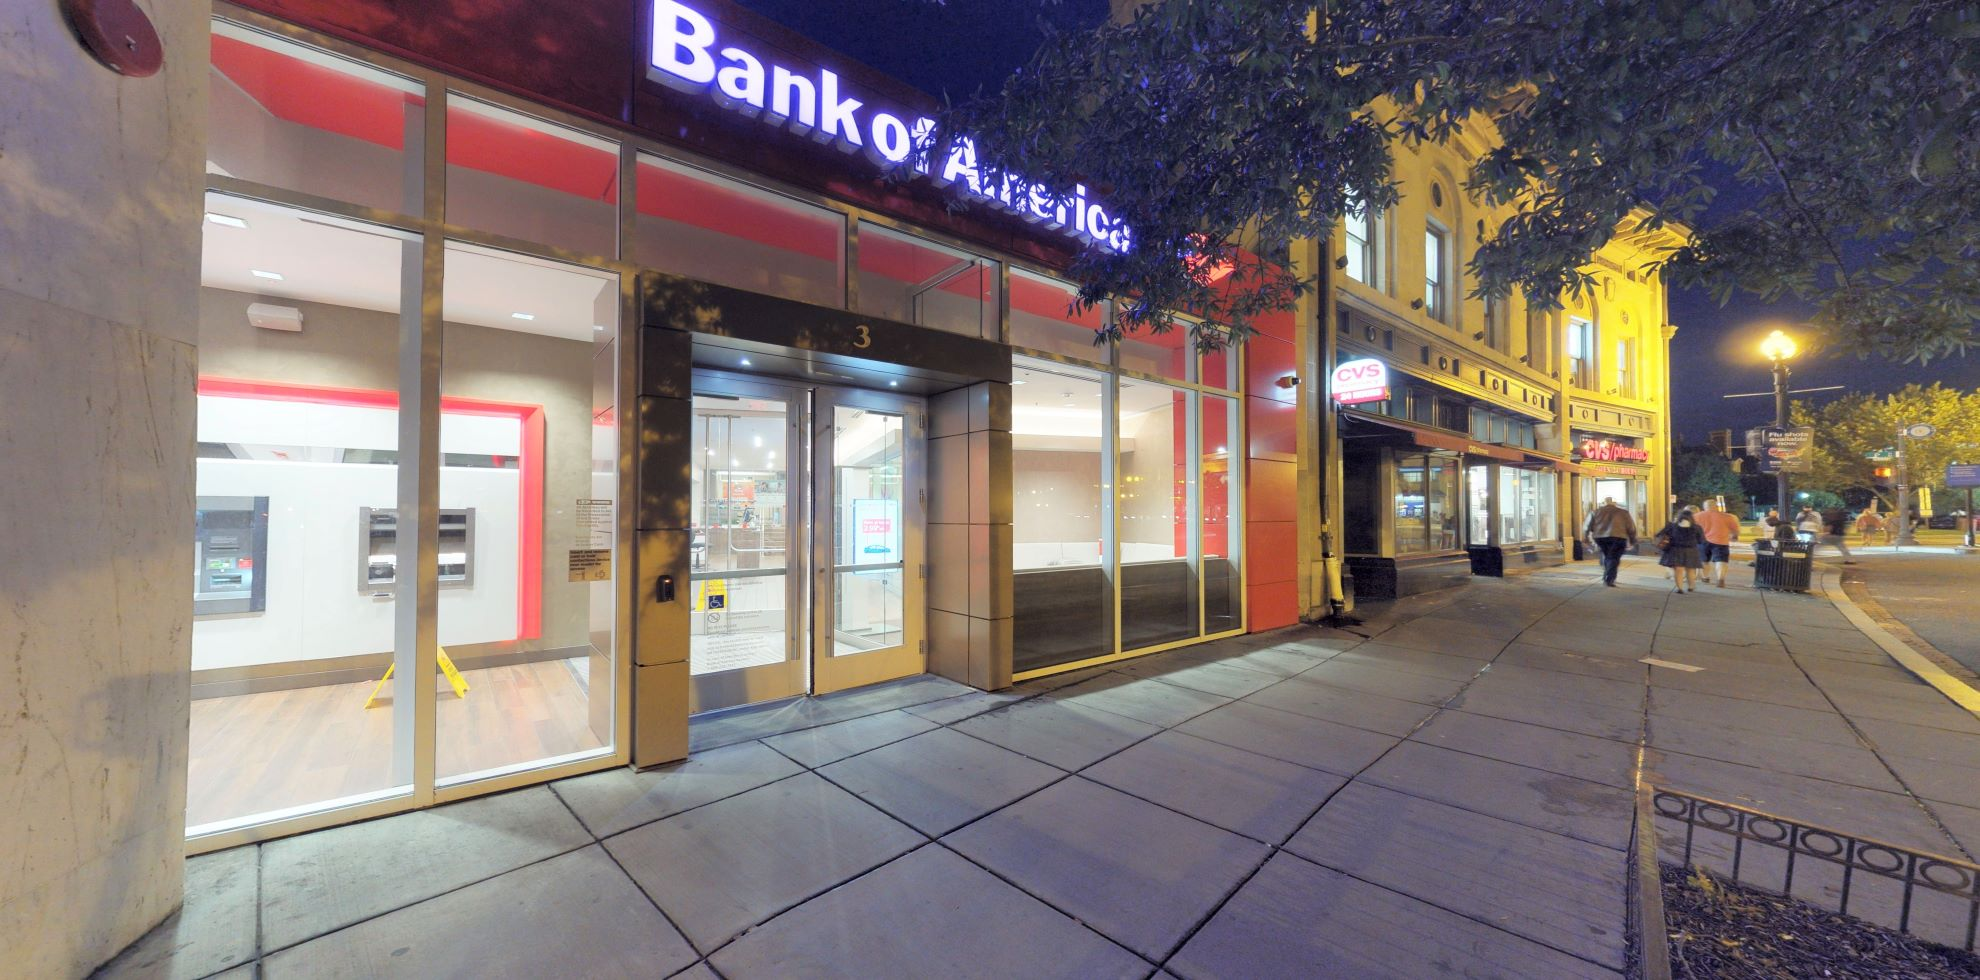 Bank of America financial center with walk-up ATM   3 Dupont Cir NW, Washington, DC 20036